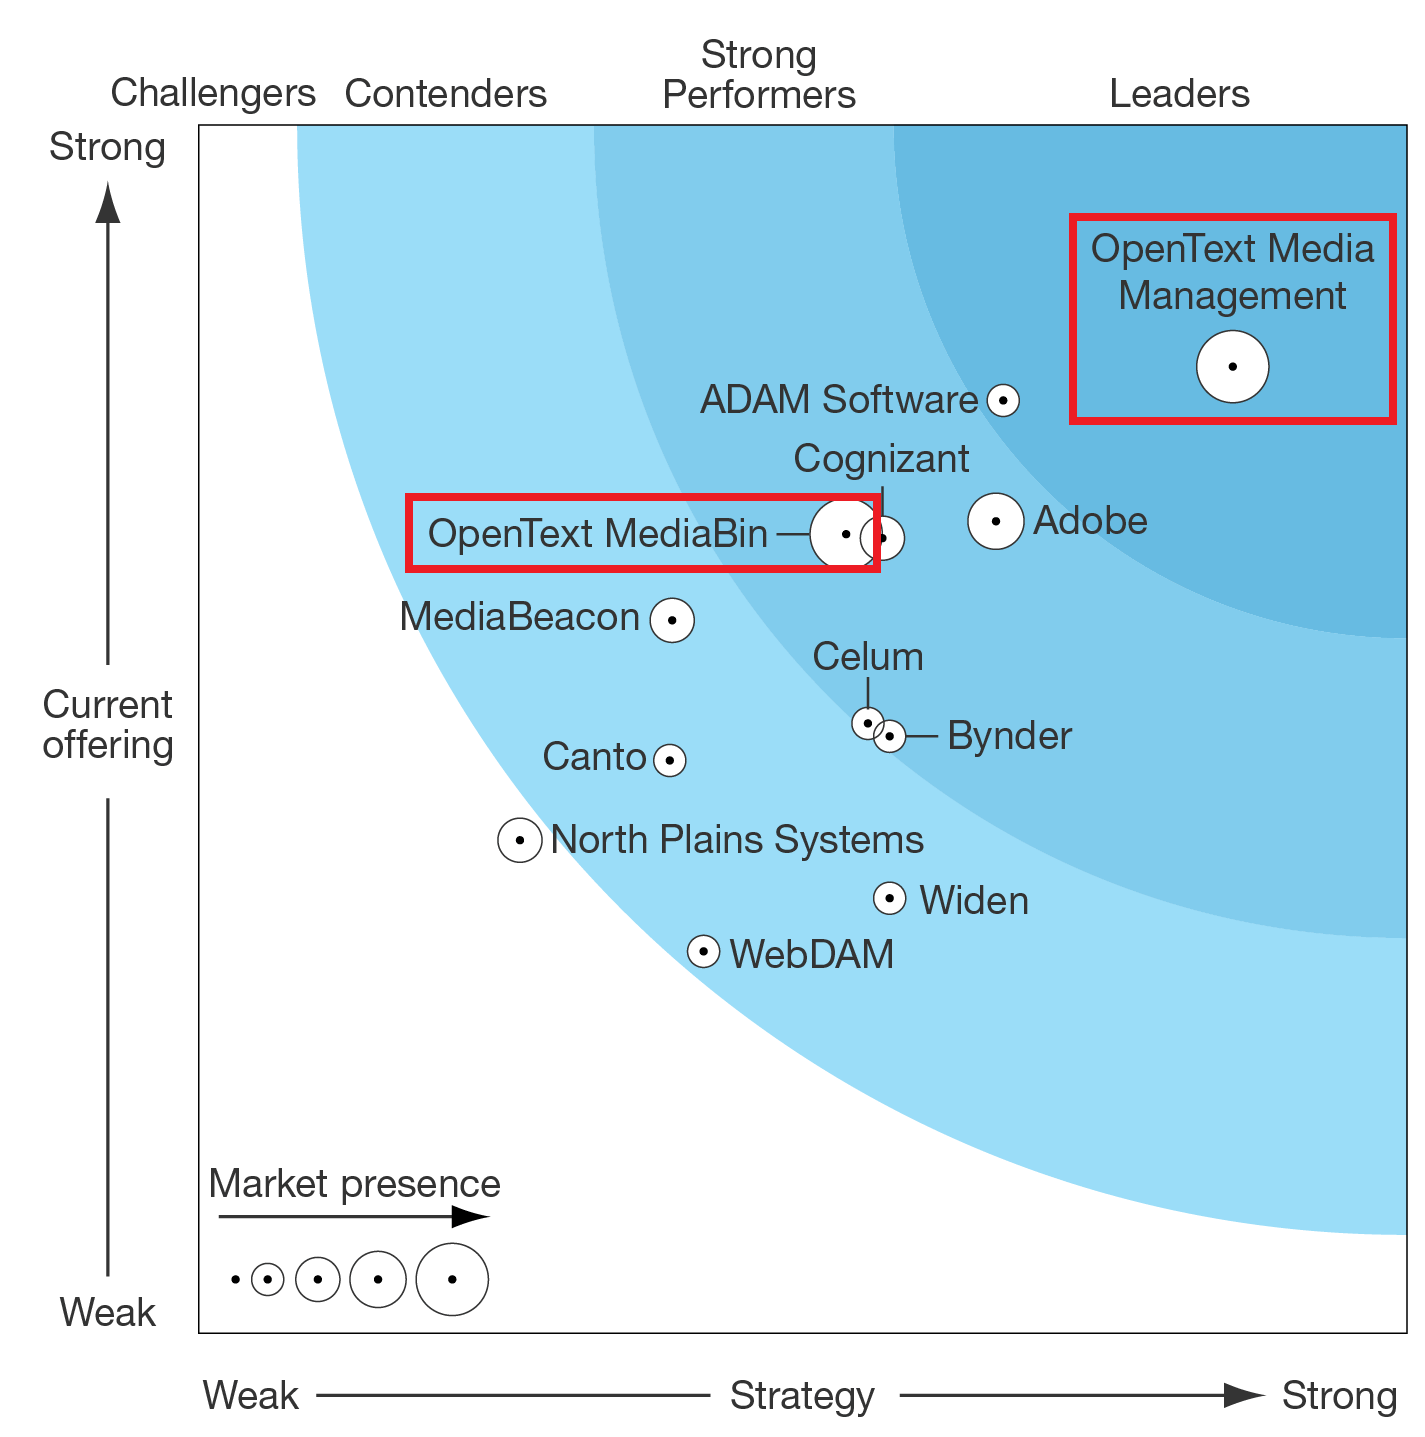 Forrester Names OpenText a Leader in Digital Asset Management for Customer Experience